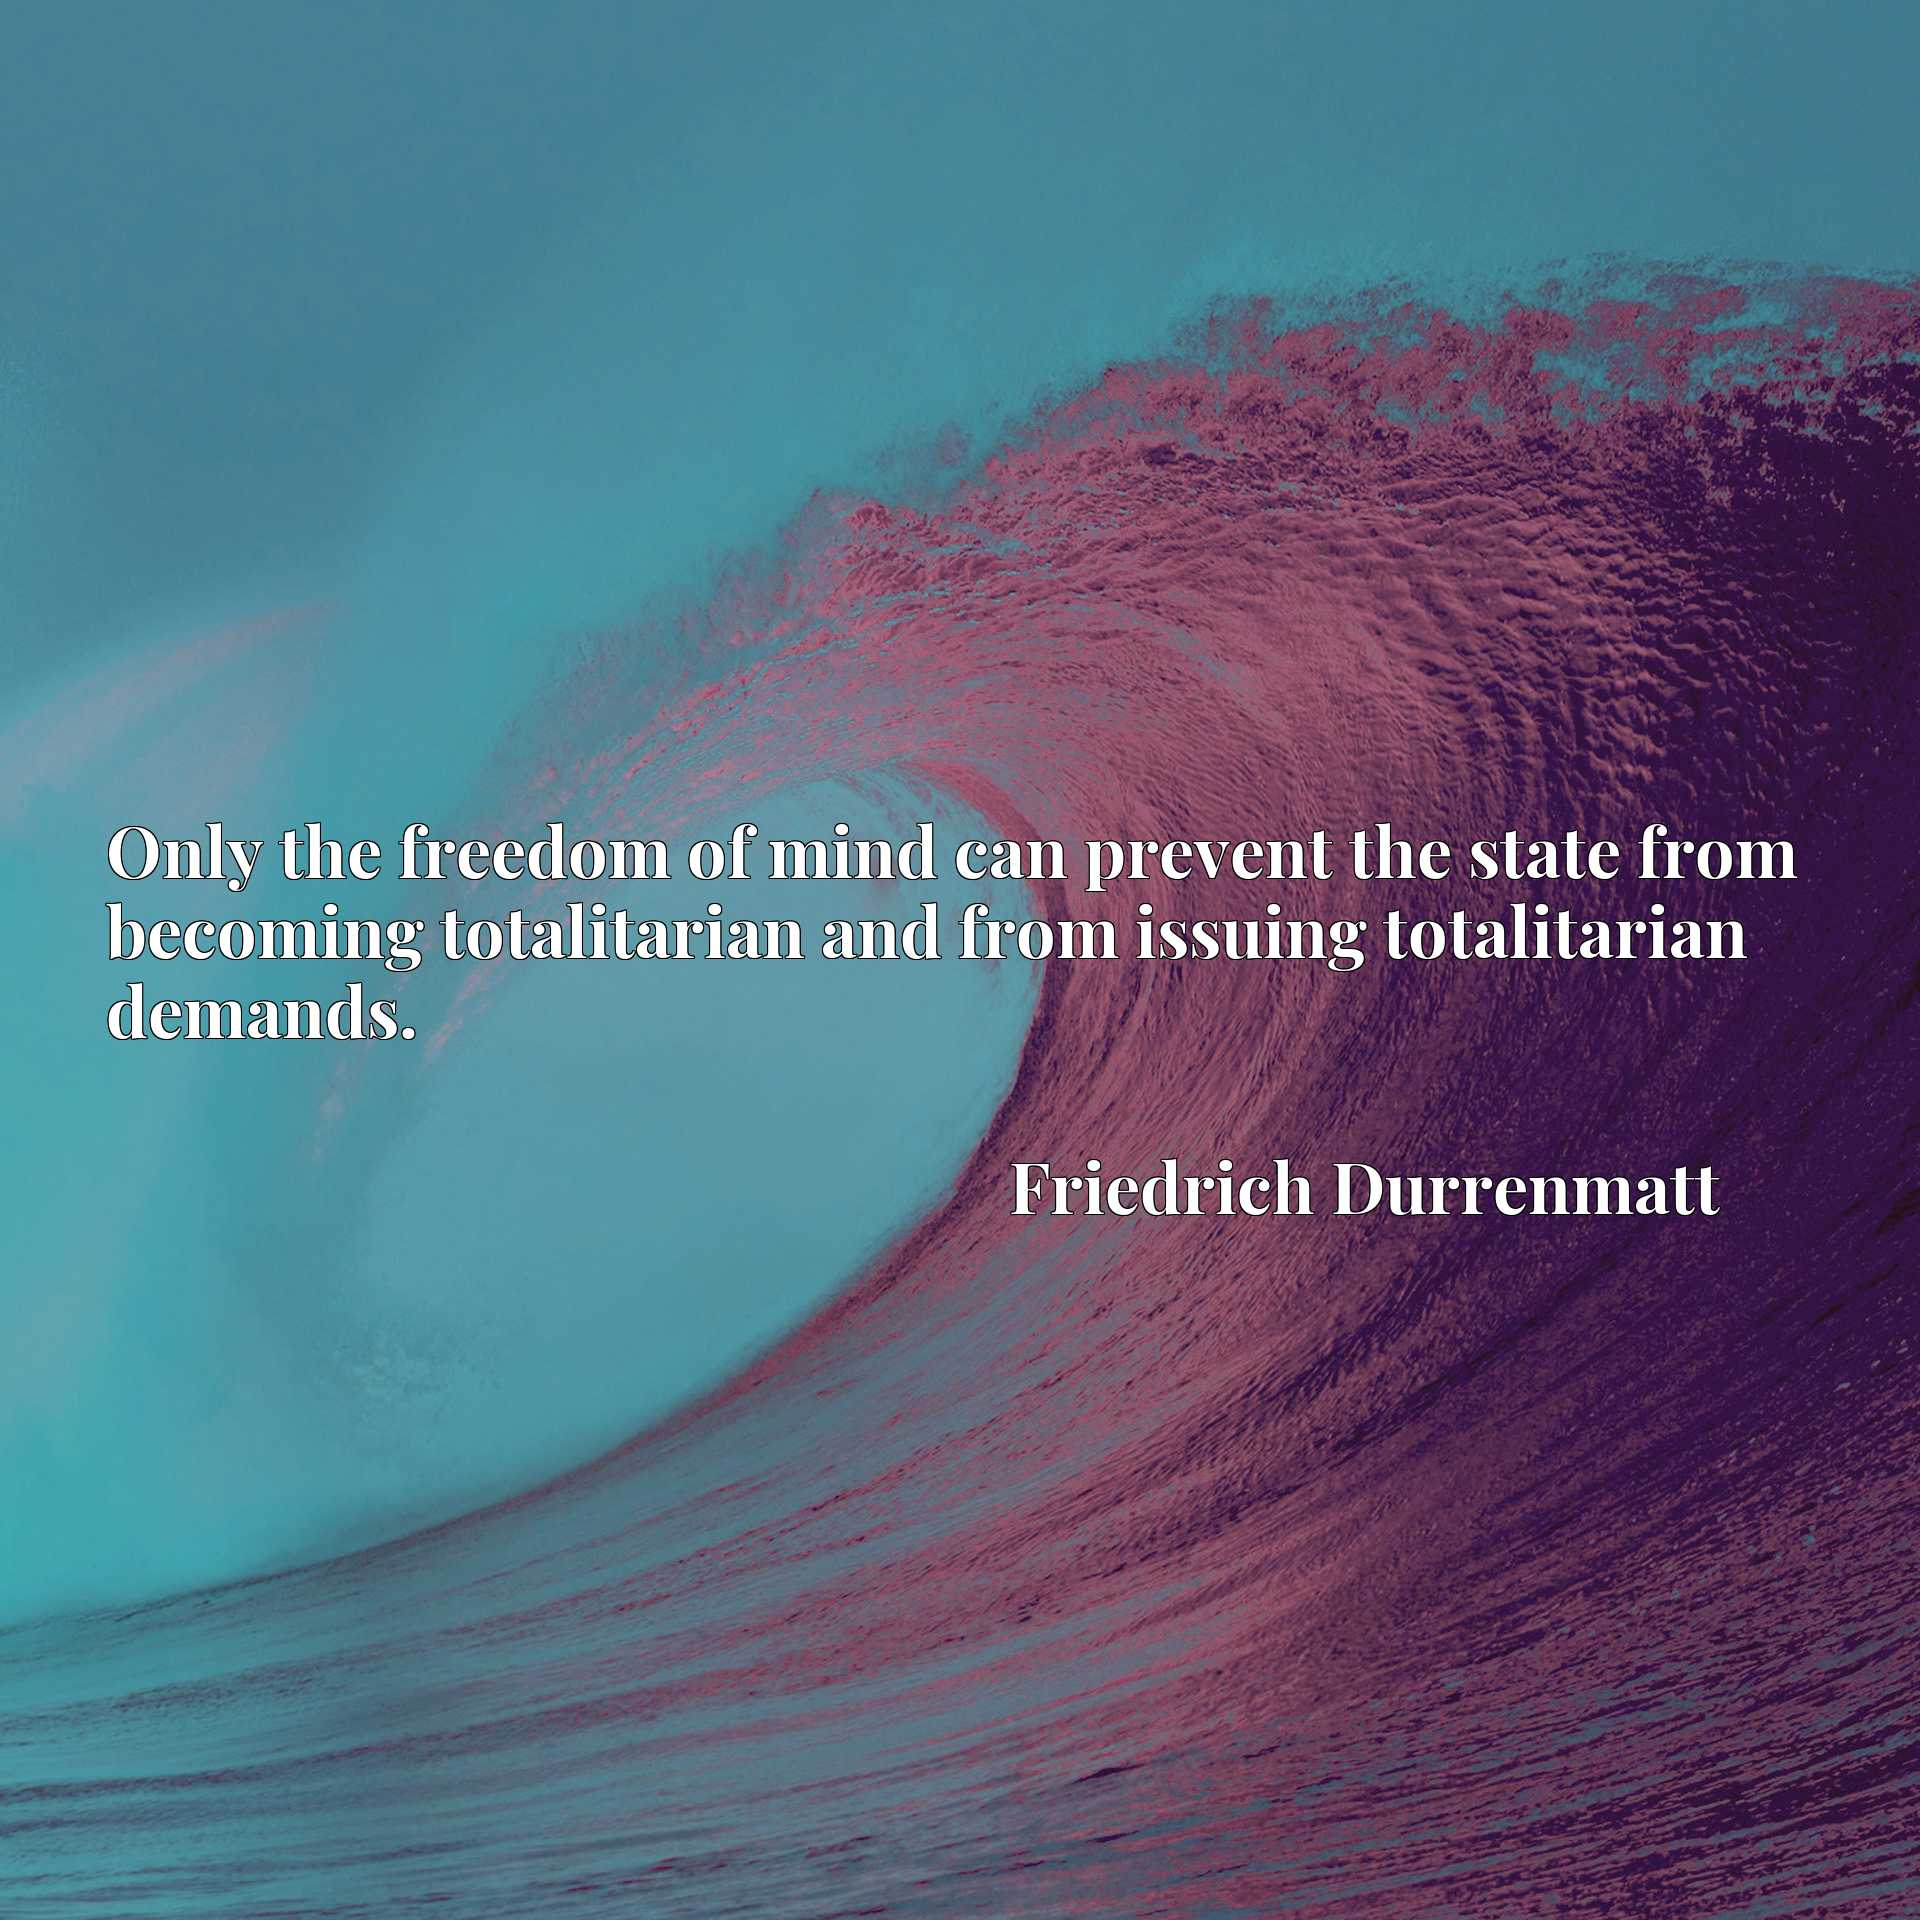 Only the freedom of mind can prevent the state from becoming totalitarian and from issuing totalitarian demands.